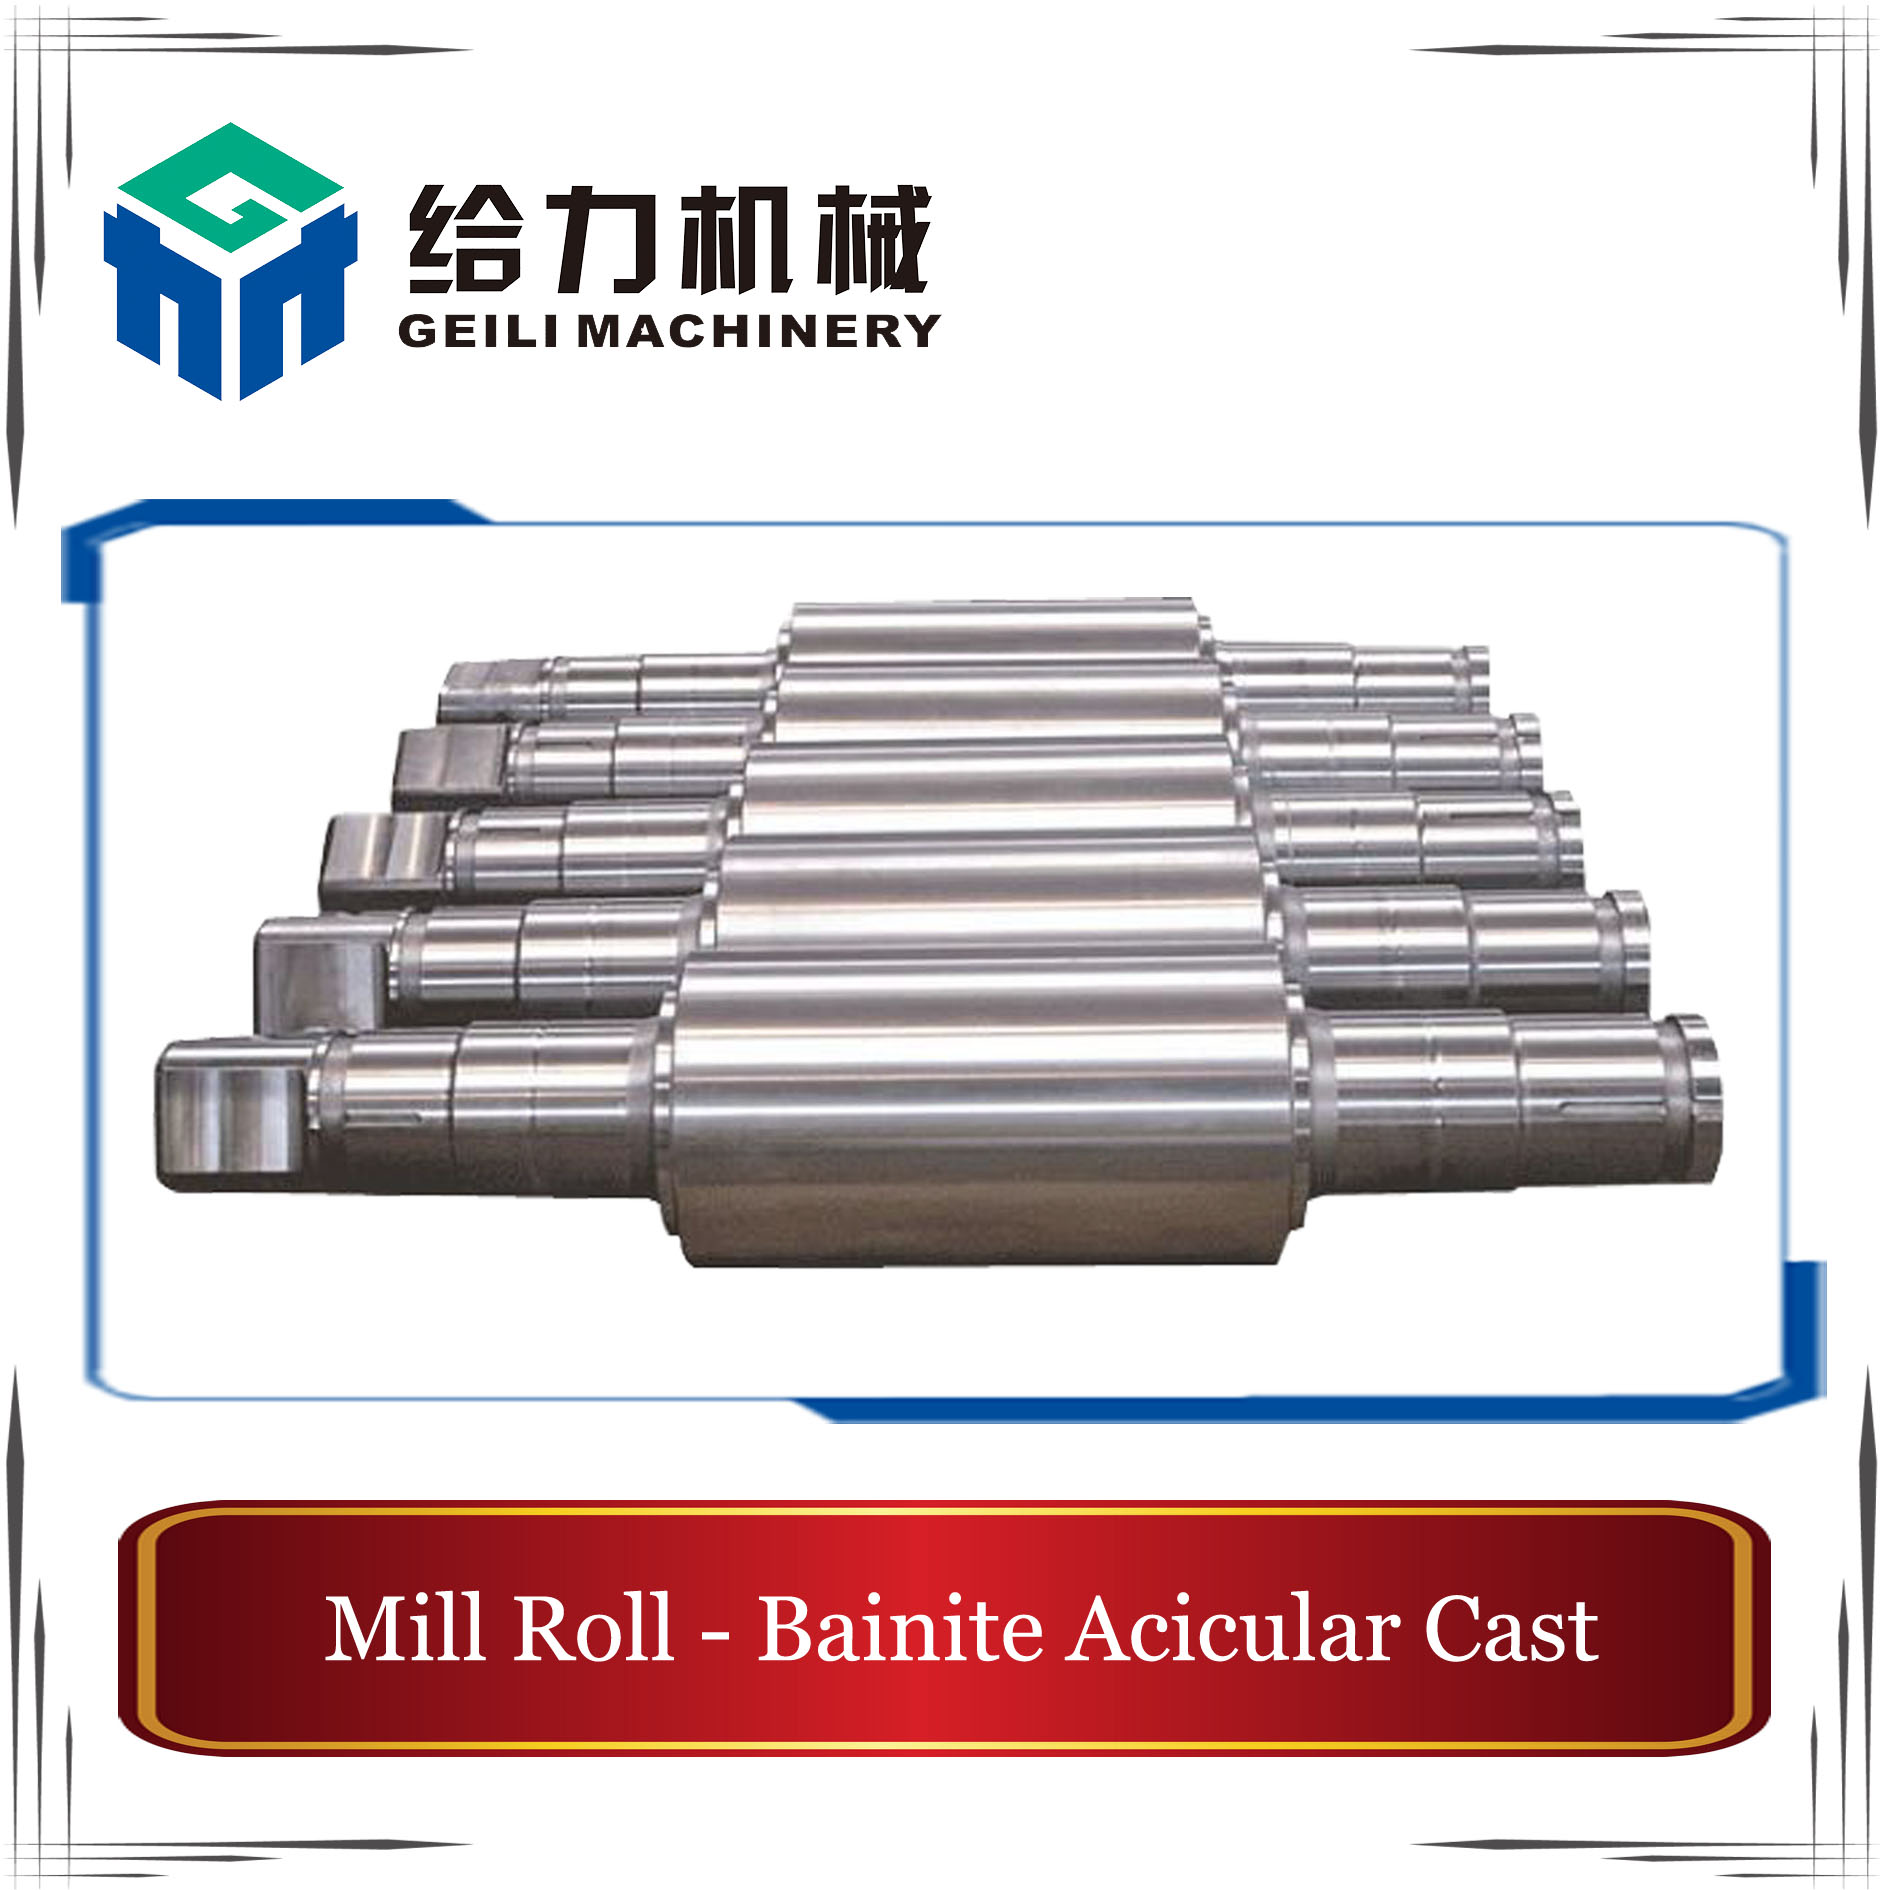 Bainite Acicular Cast Roll